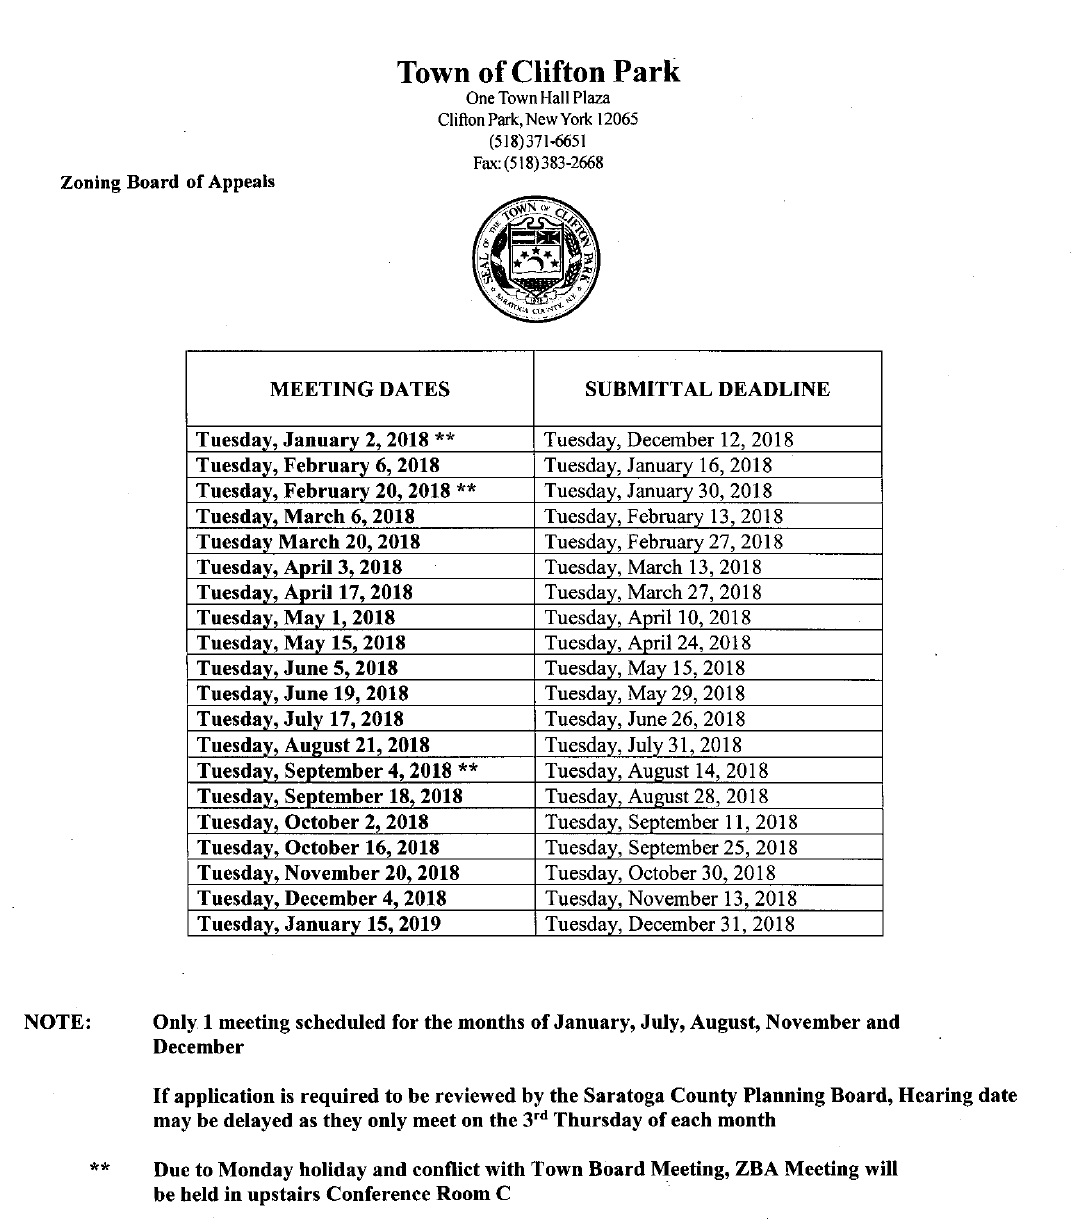 2018 Zoning Board of Appeals Meetings